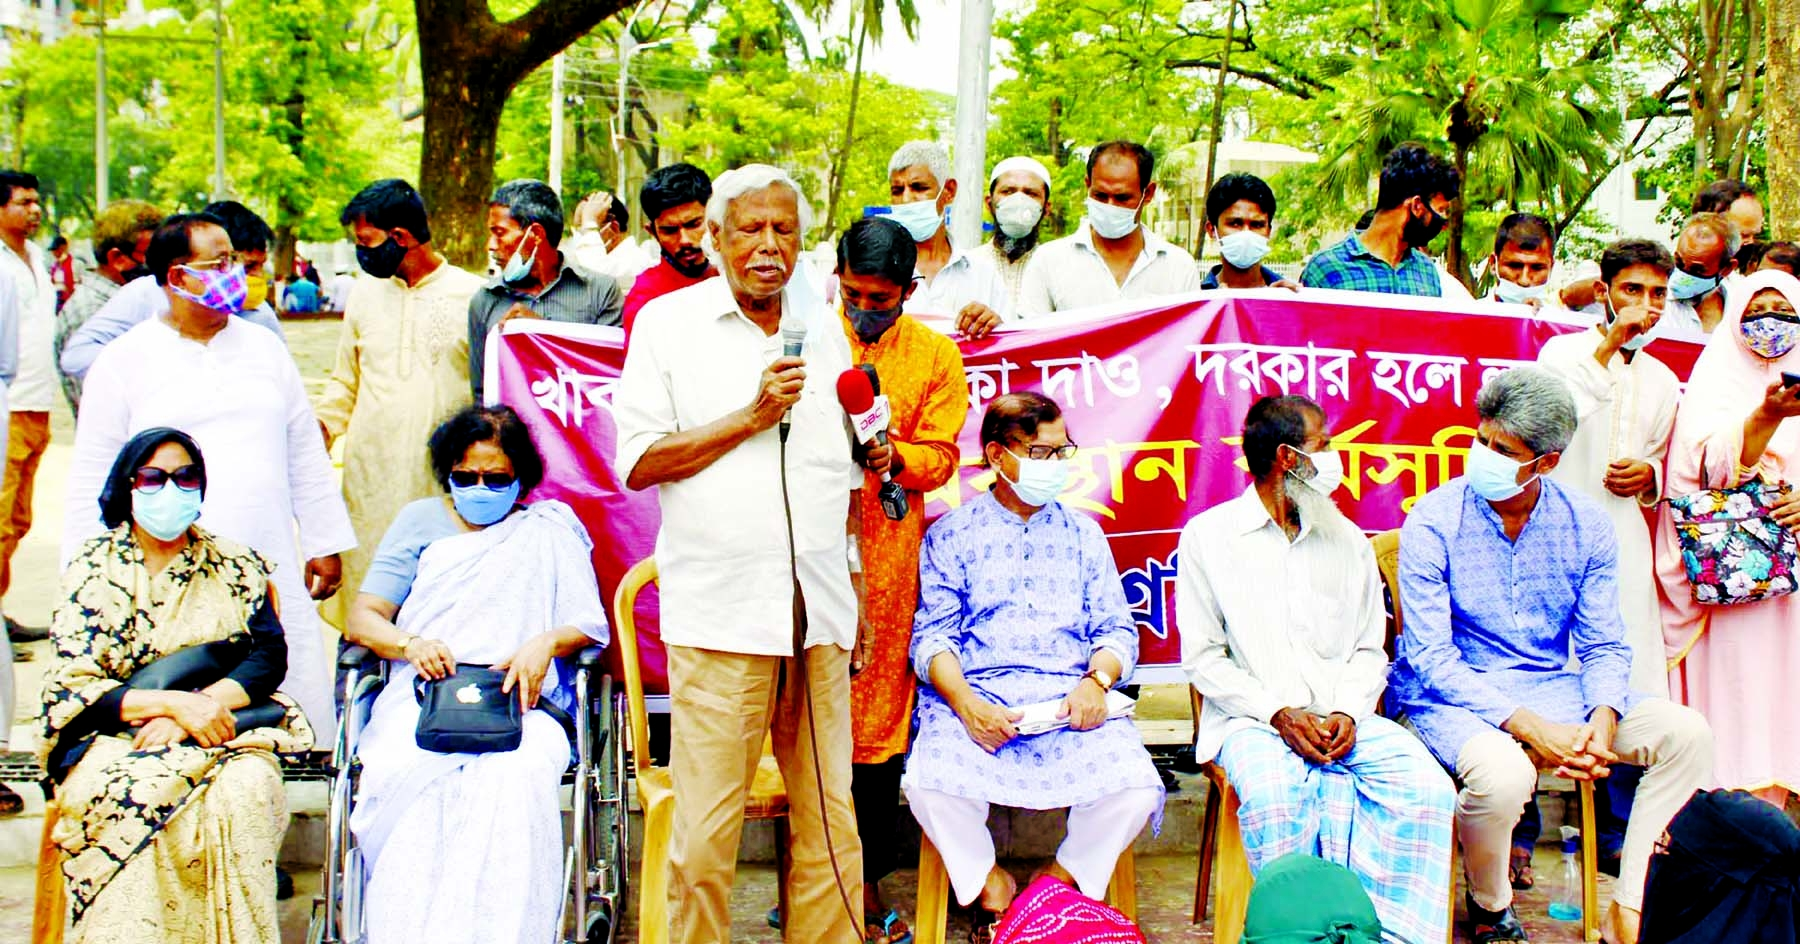 Trustee of Ganoswasthya Kendra Dr Zafrullah Chowdhury speaks at a sit-in organised by Rickshaw Sramik Dal at the Central Shaheed Minar in the city on Wednesday.